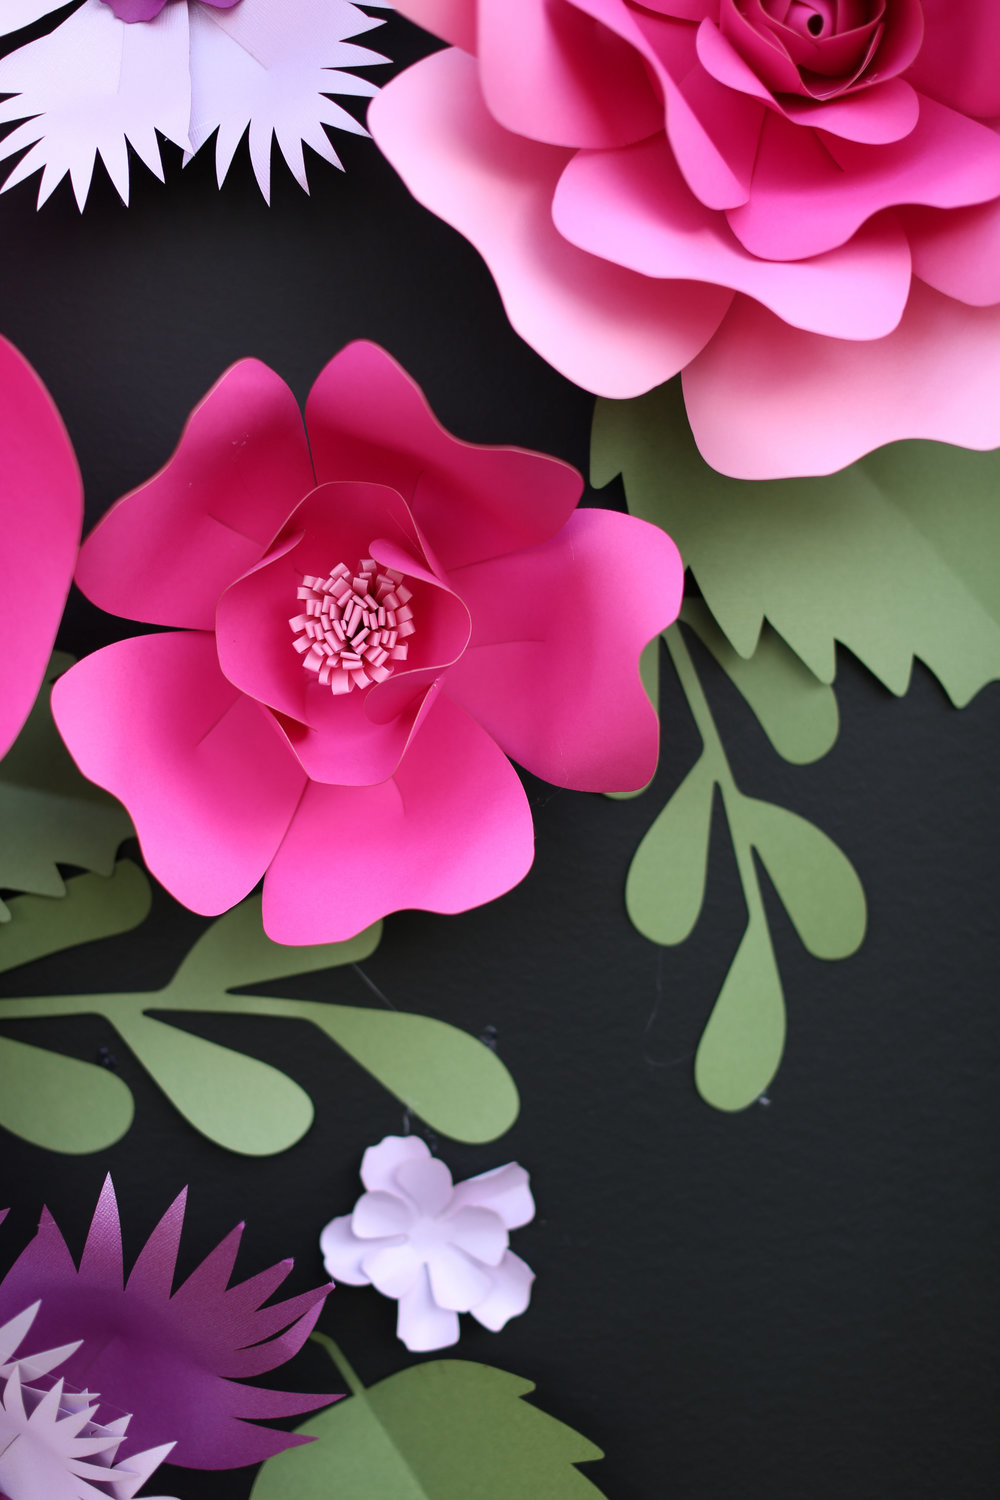 Chalkboard_Backdrop_Giant Paper Flowers_ backdrop display_ dessert table backdrop _ Kate Spade inspired dessert table decor_ hot pink and purple flowers for backdrop _ chalkboard backdrop_unique 16.jpg